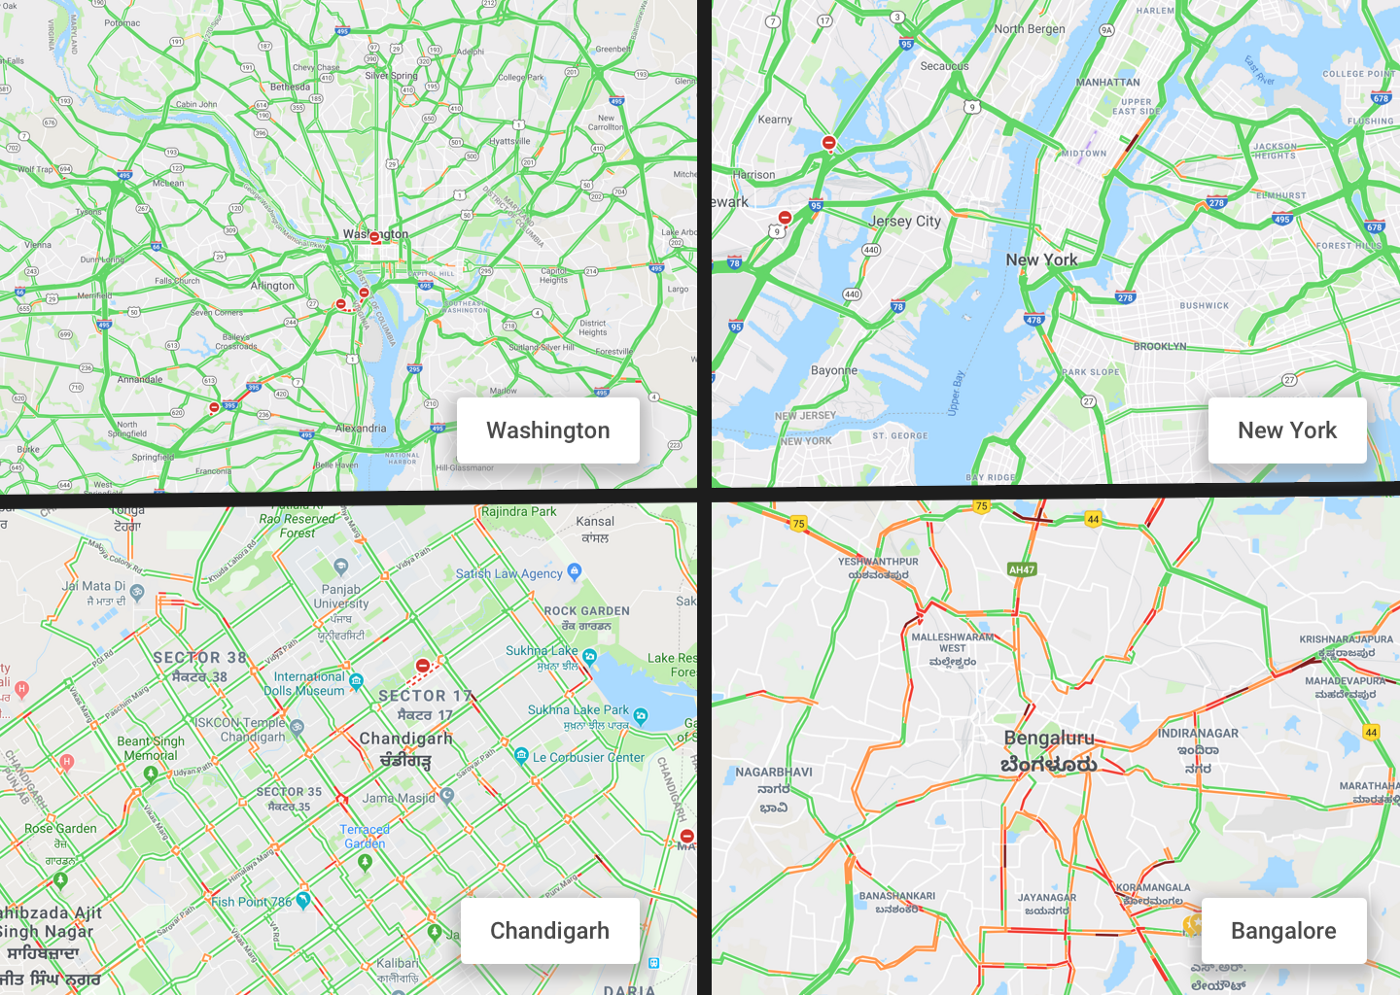 How can design help solve Bangalore's traffic problem?